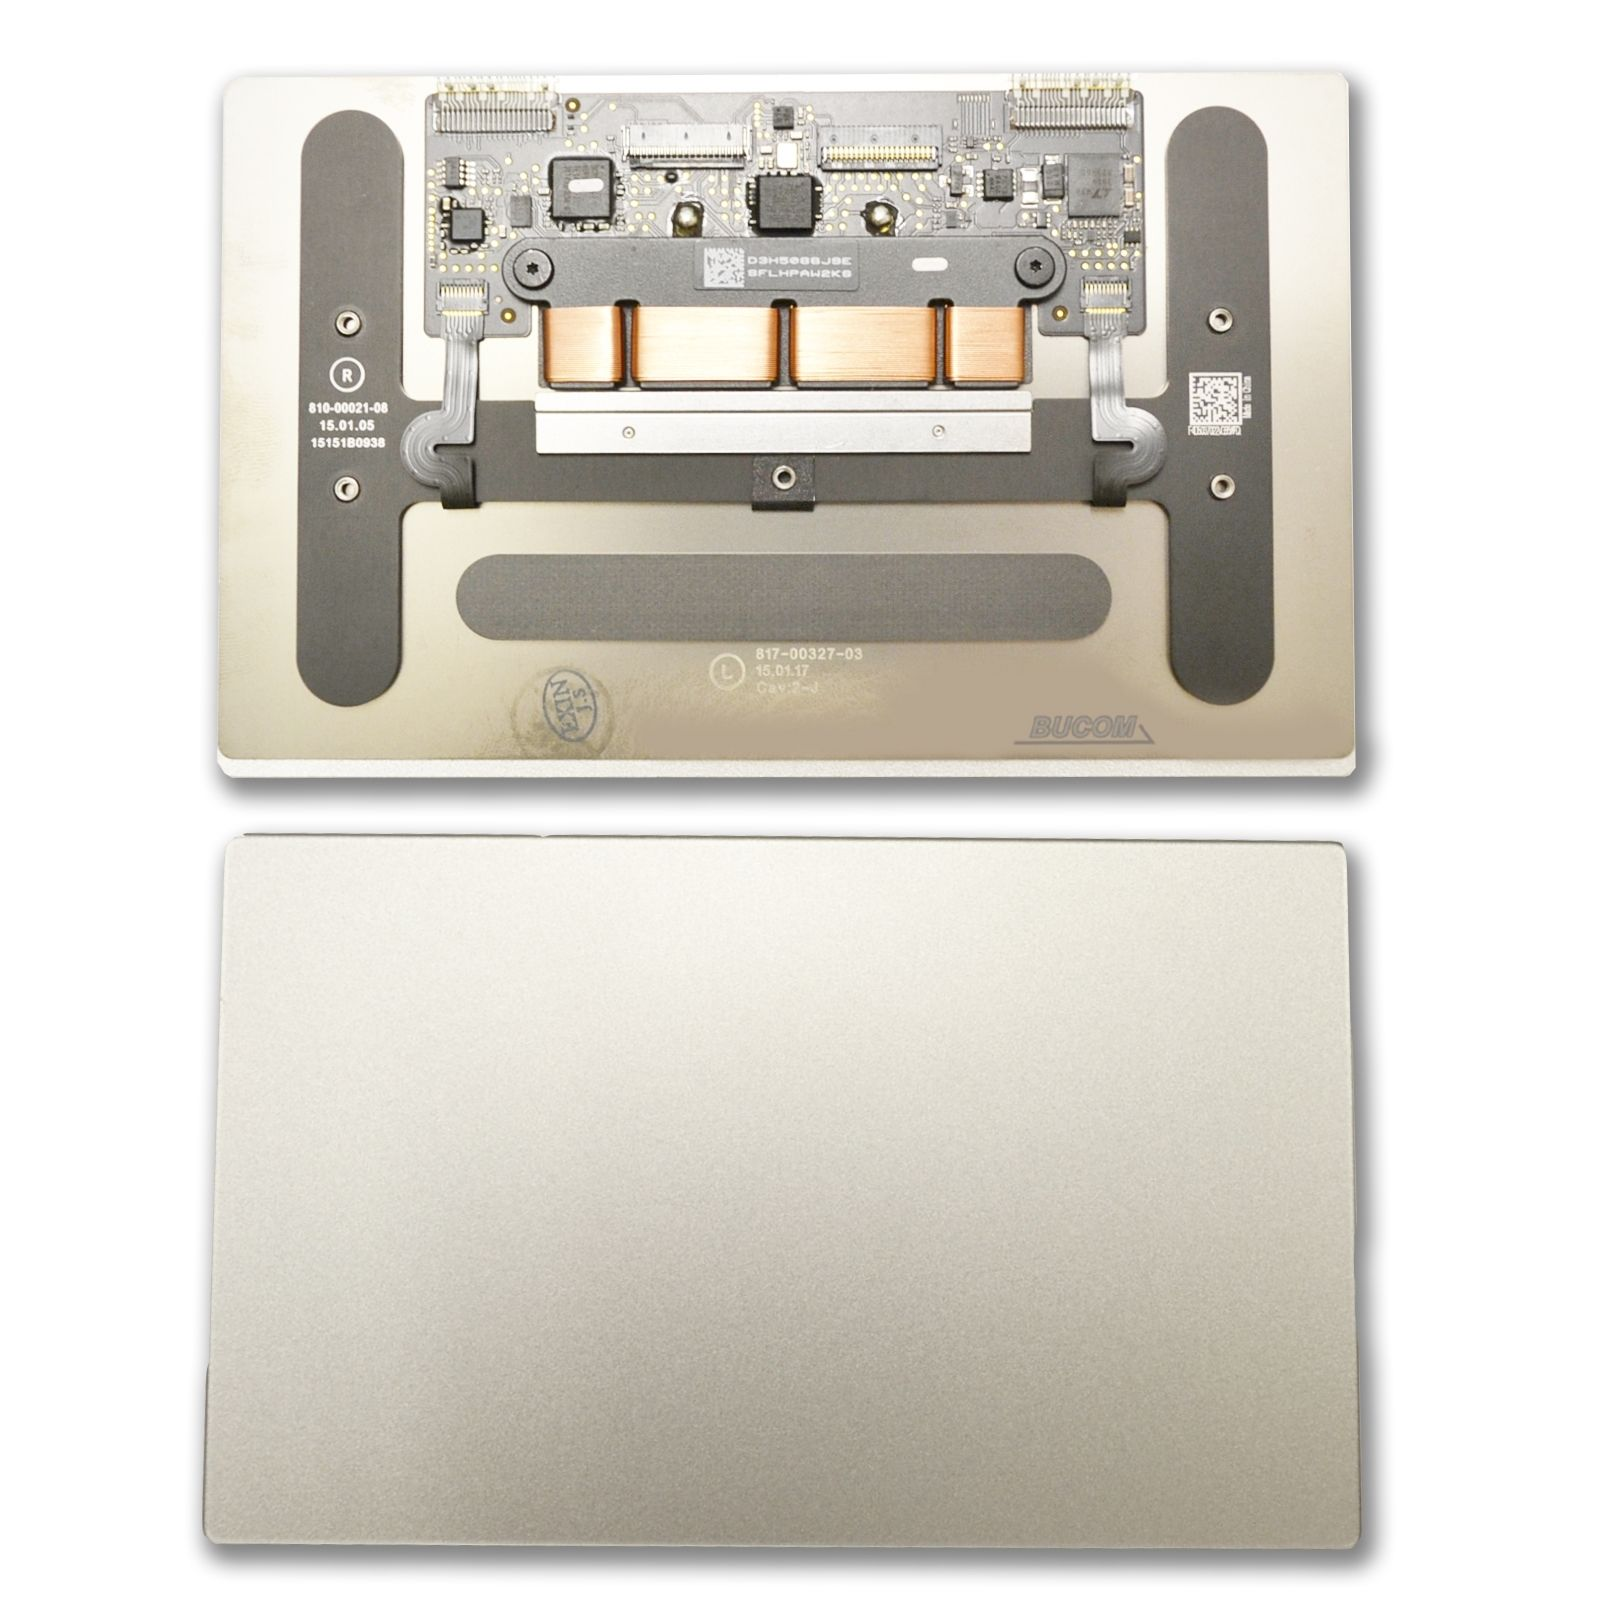 THAY CHUỘT Trackpad touchpad Apple macbook 12inch force A1534 2015 2016 MF855LL-A MF865LL-A BTO-CTO MLHA2LL-A MLHC2LL-A BTO-CTO